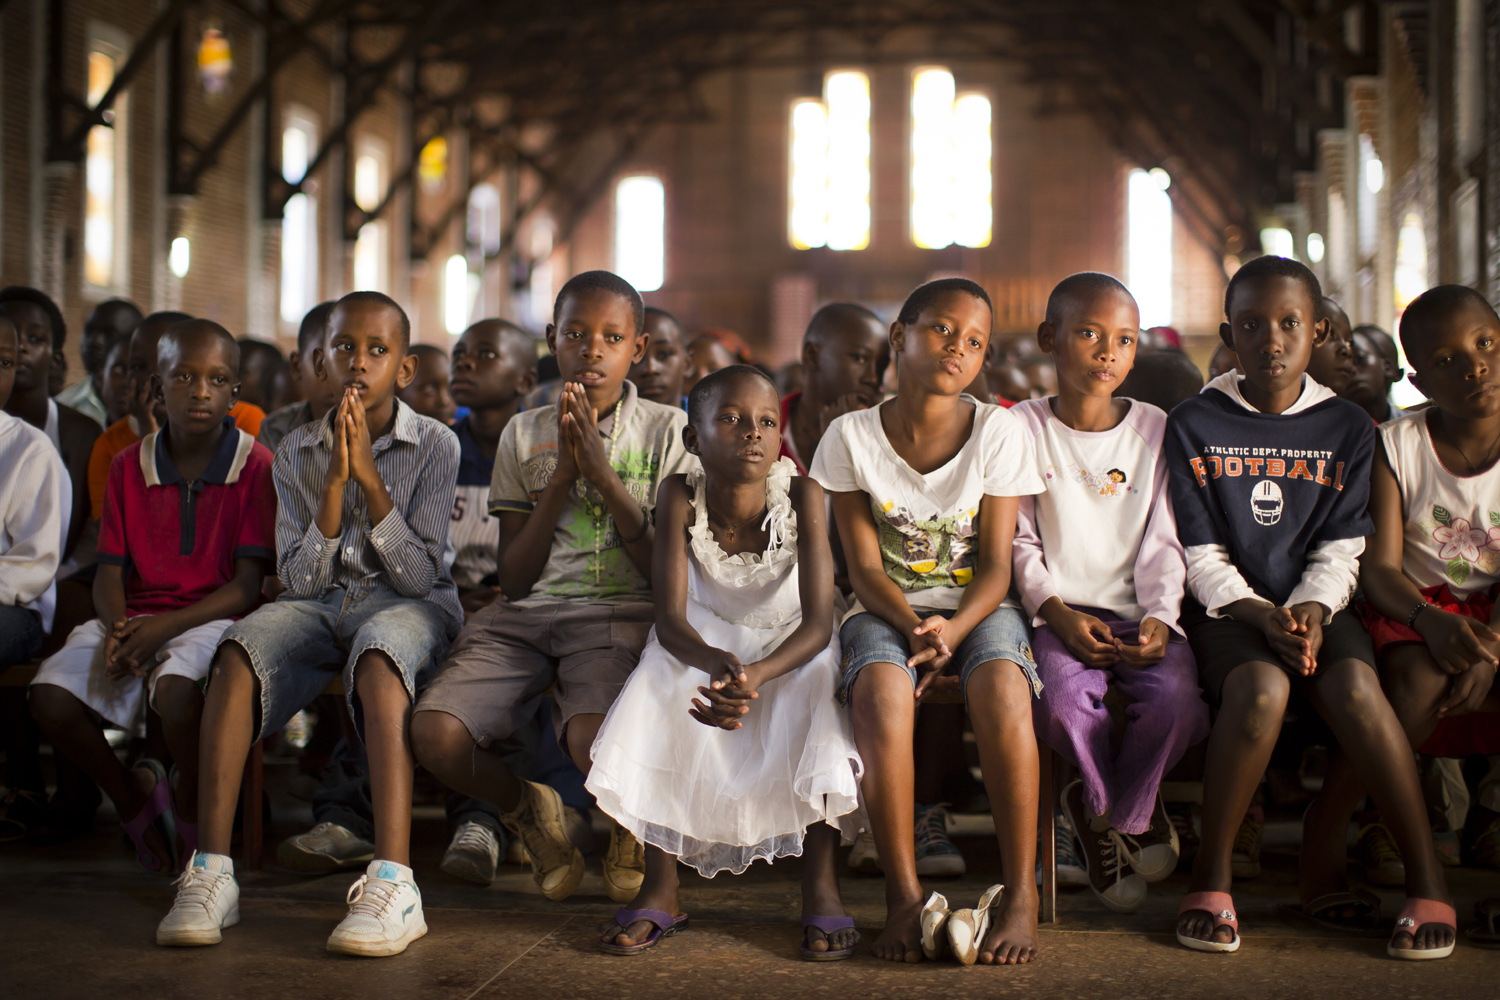 Apr. 6, 2014. Rwandan children listen and pray during a Sunday morning service at the Saint-Famille Catholic church, the scene of many killings during the 1994 genocide, in the capital Kigali, Rwanda.